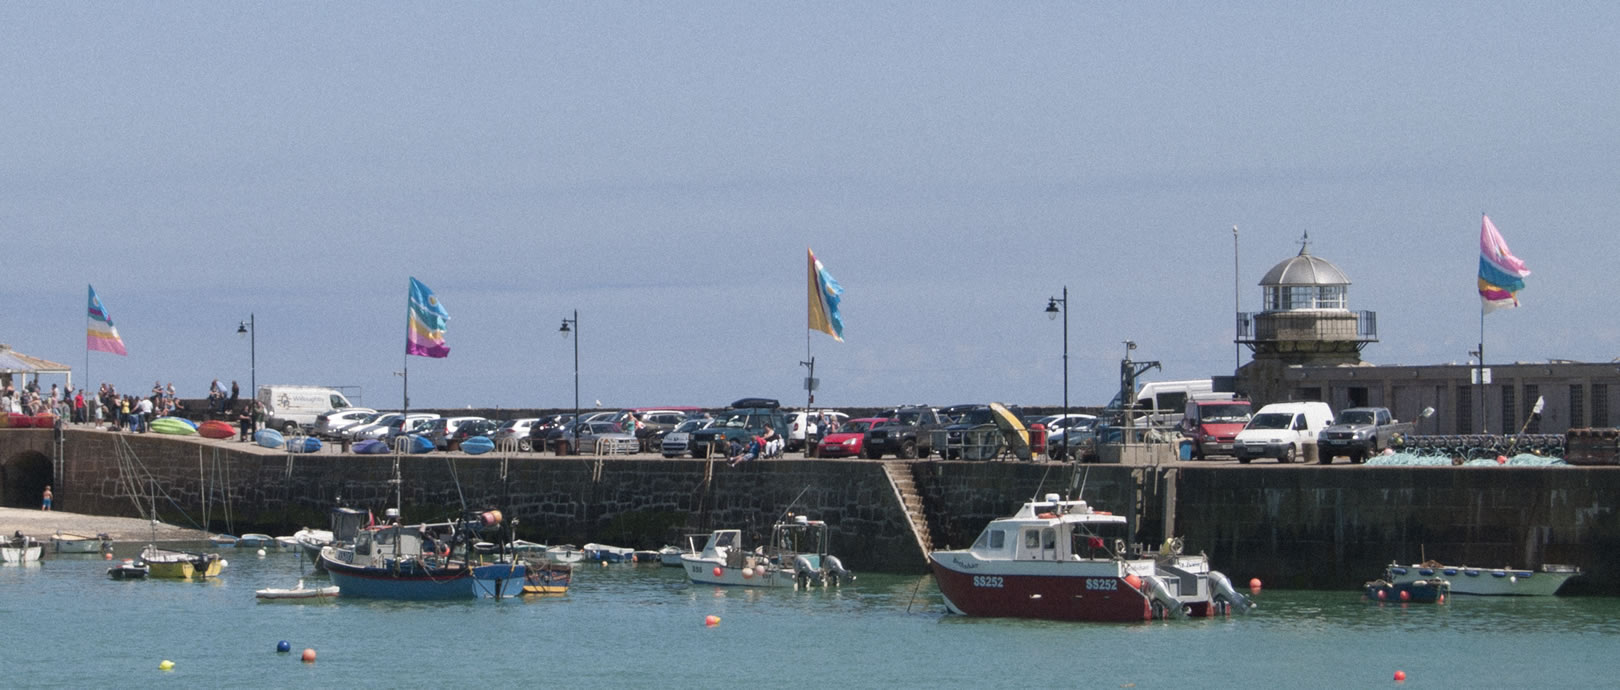 St Ives Harbour Flags